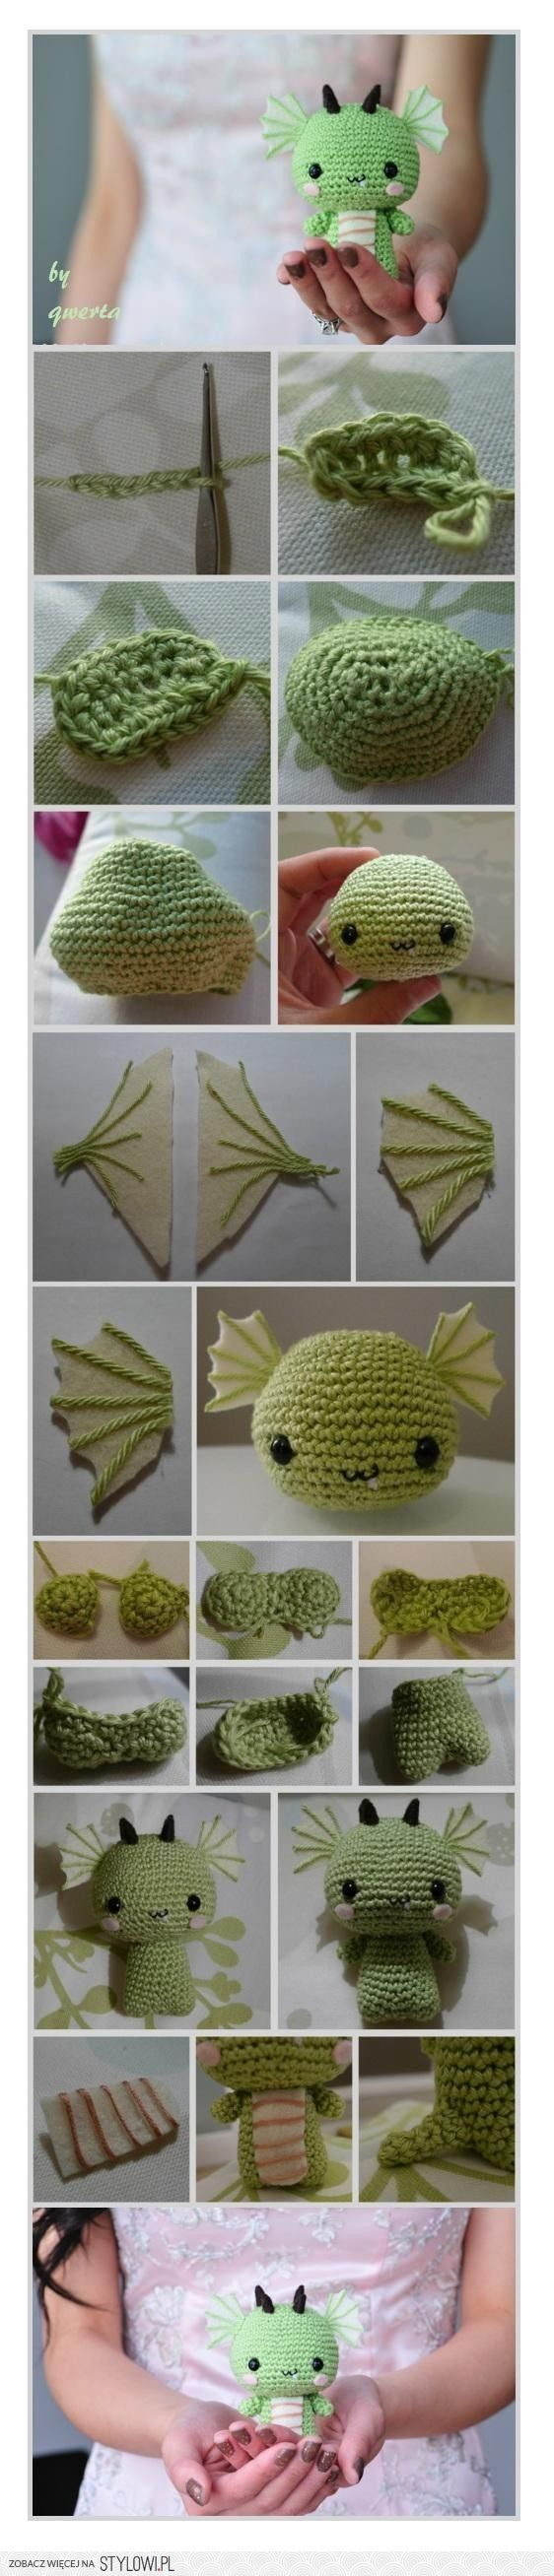 Crochet dragon.... Wonder if I could make a toothless